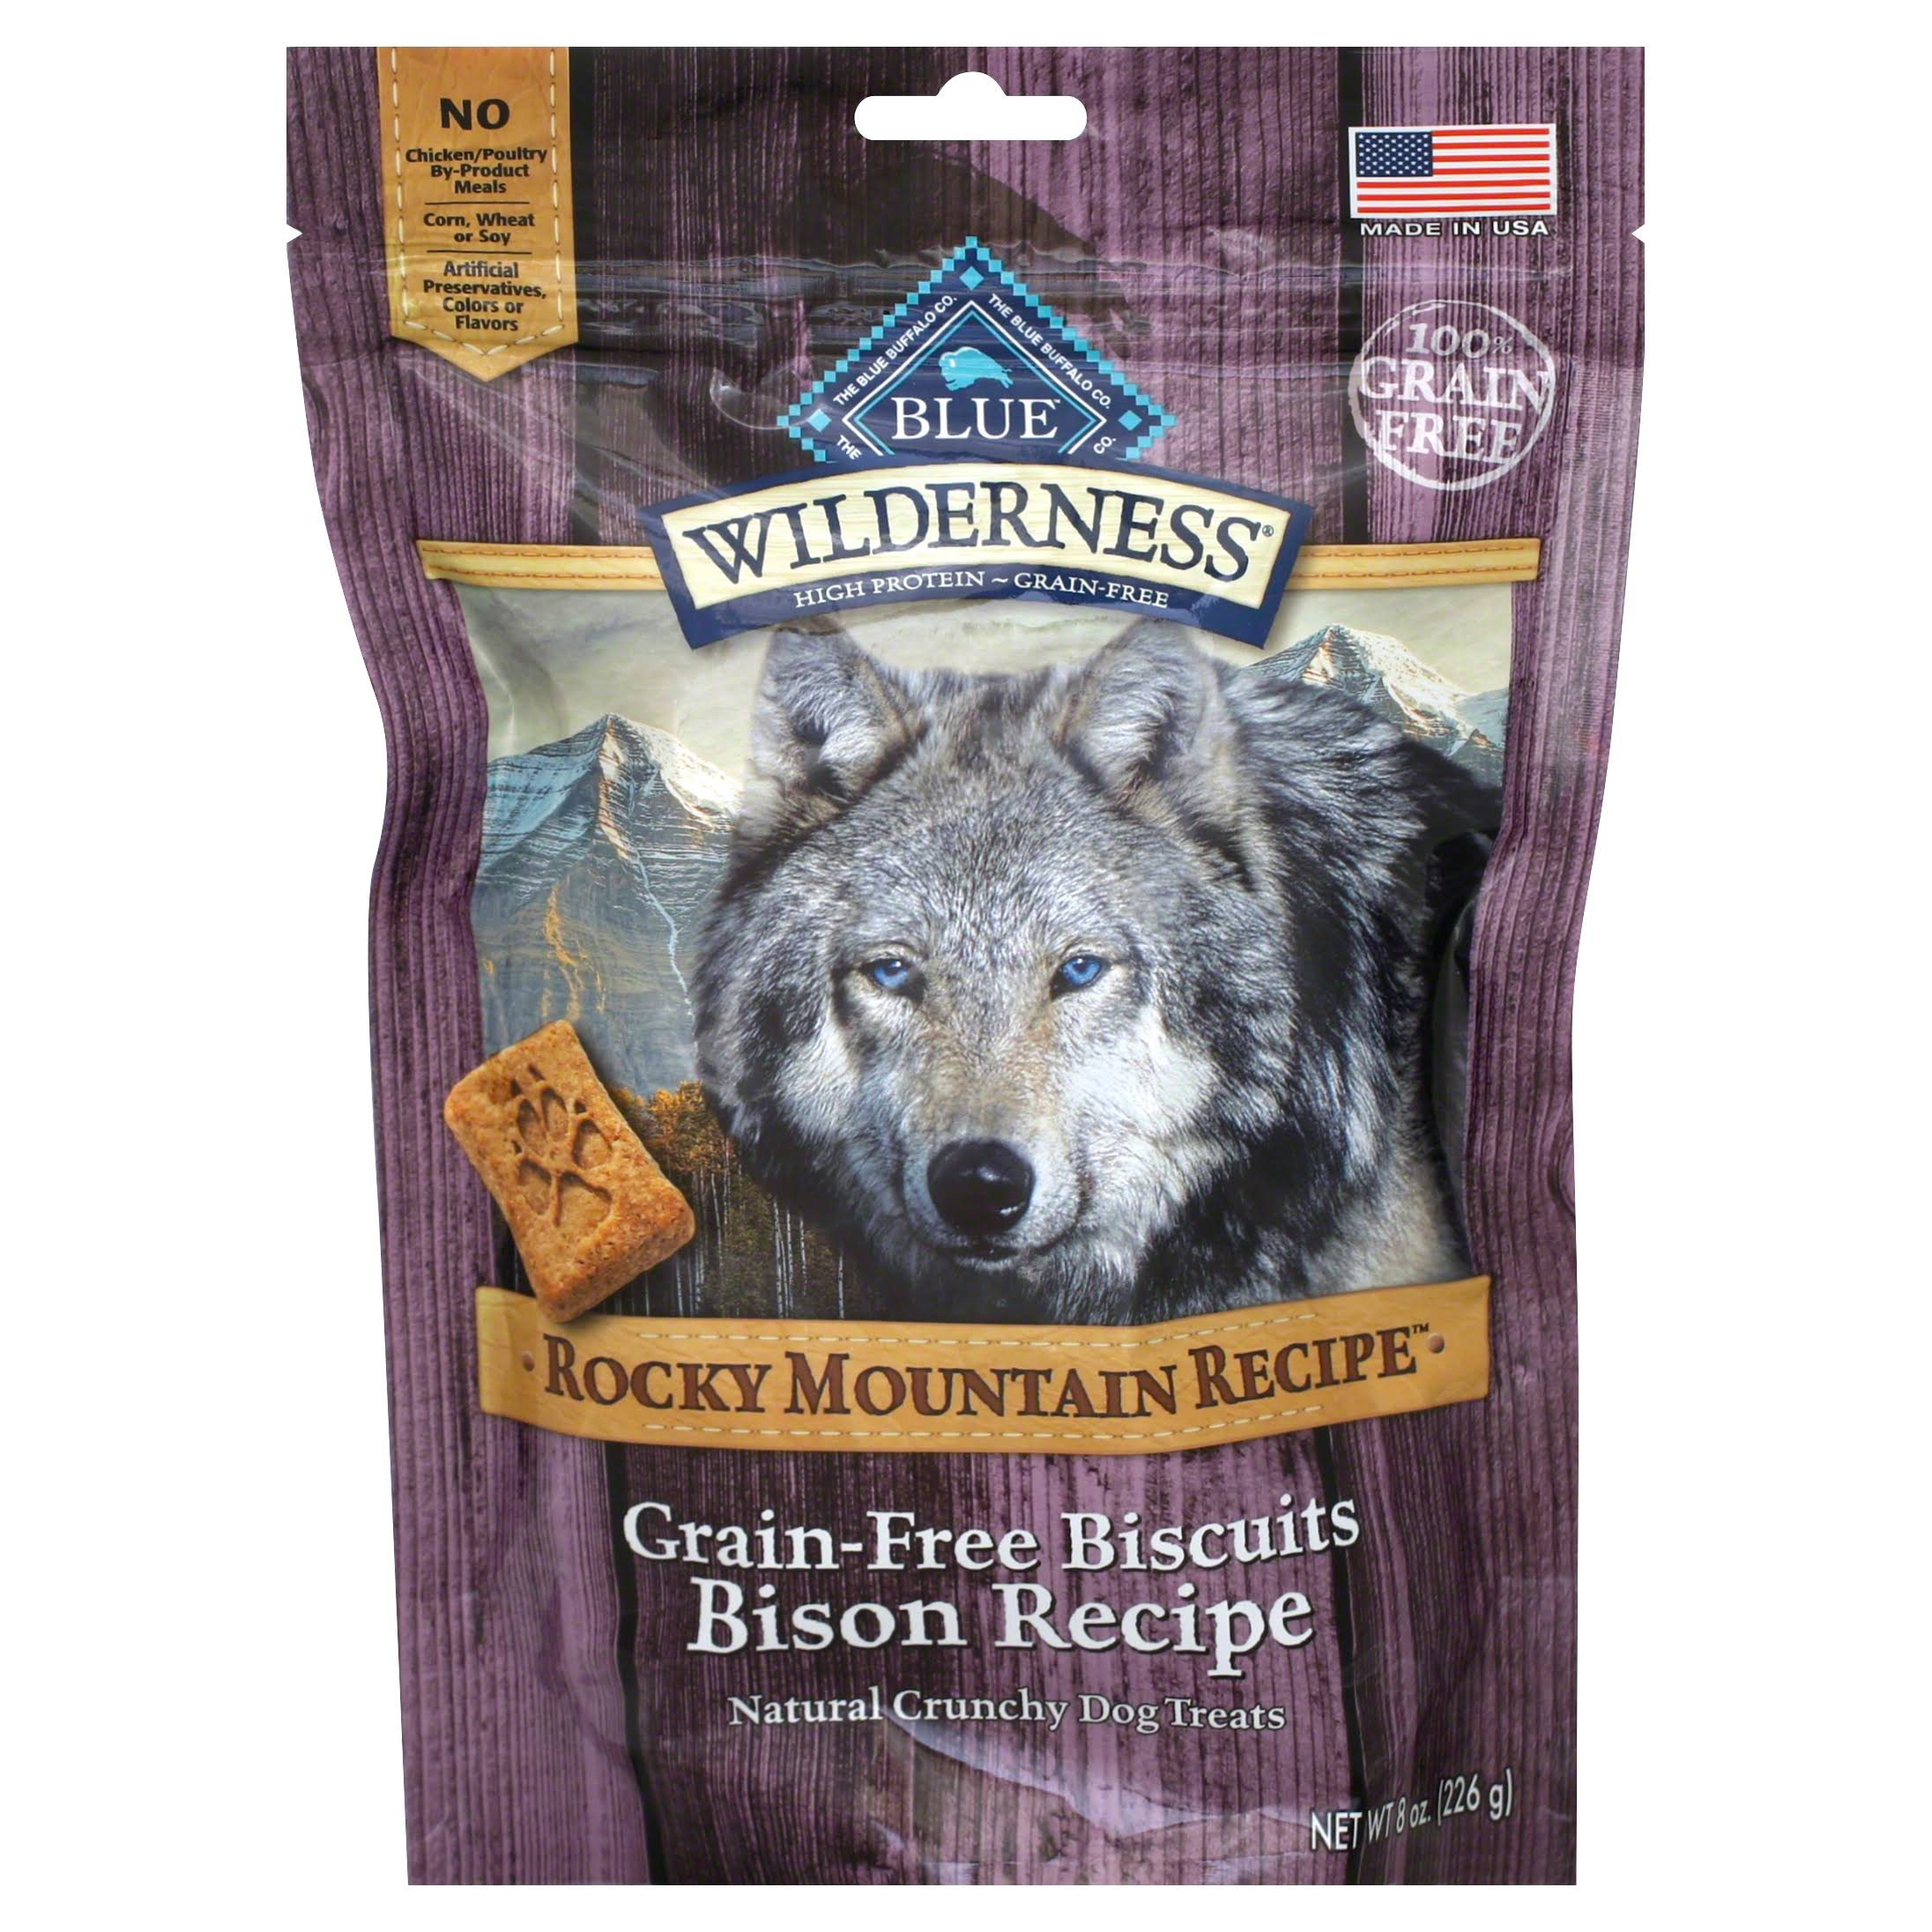 Blue Buffalo Wilderness Rocky Mountain Recipe Grain Bison Dog Biscuits - 8oz